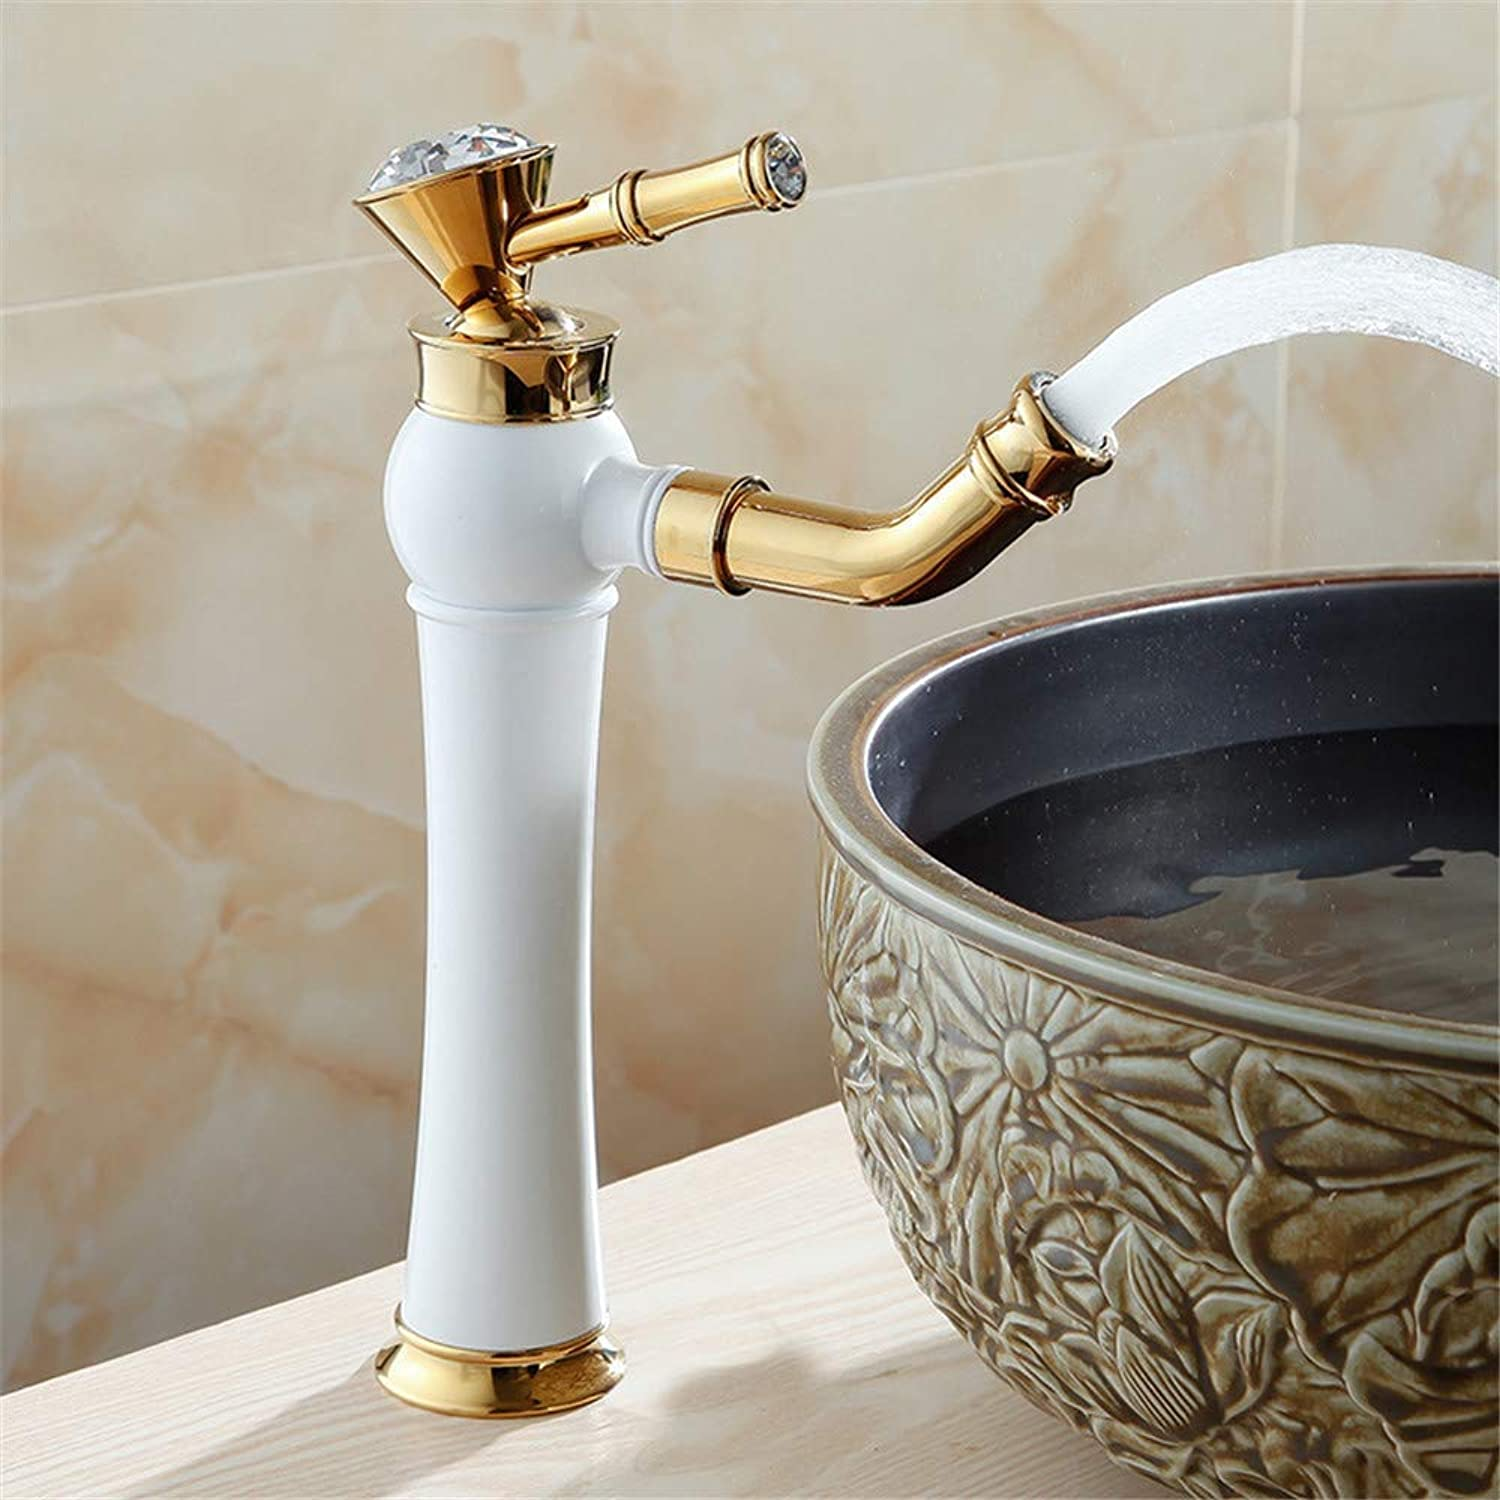 Oudan European New Luxury Crystal Silver Antique gold Black bluee and White Porcelain Base Kitchen Bathroom Faucet B (color   E, Size   -)